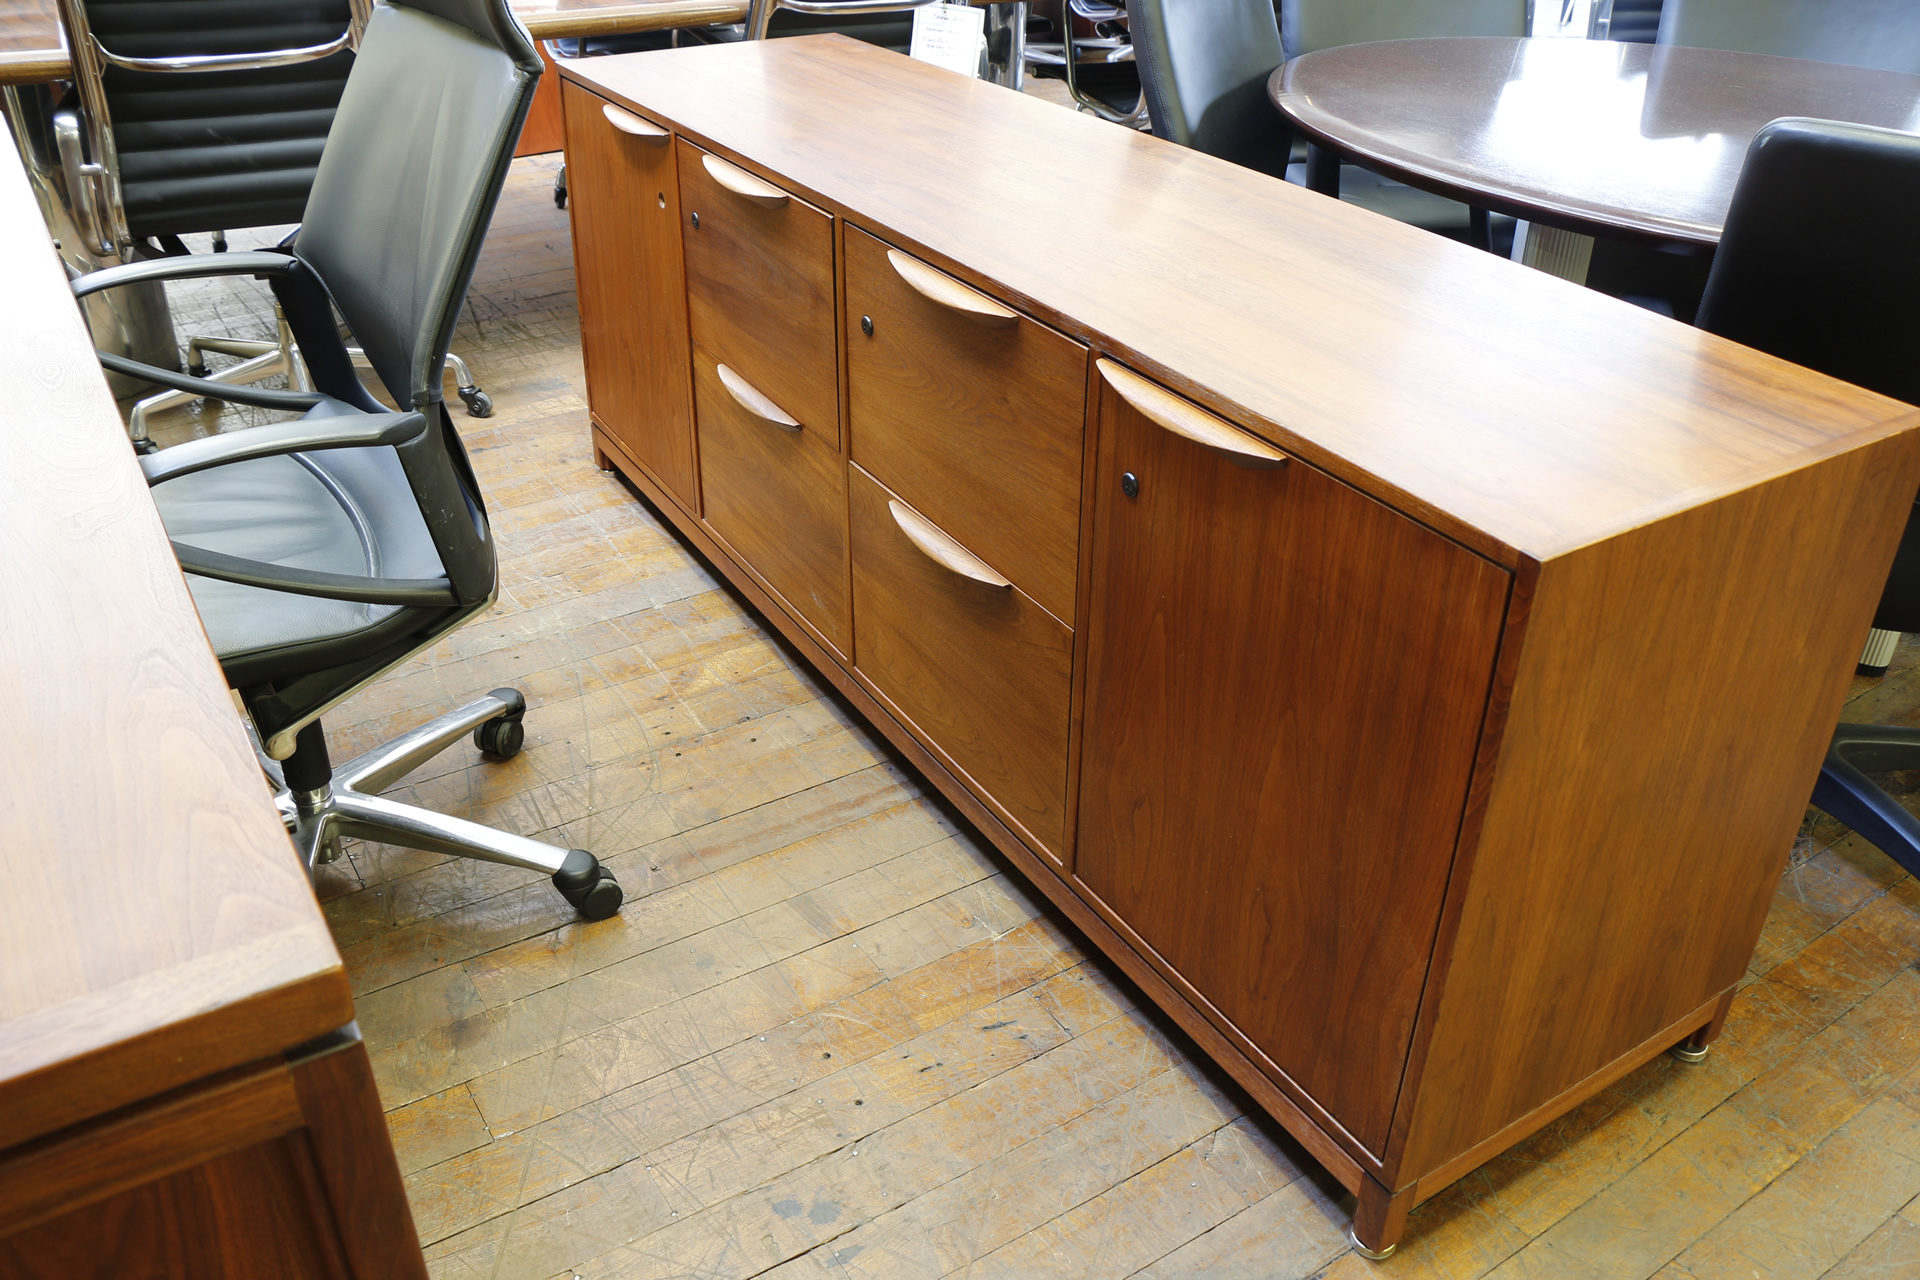 peartreeofficefurniture_peartreeofficefurniture_mg_4383.jpg